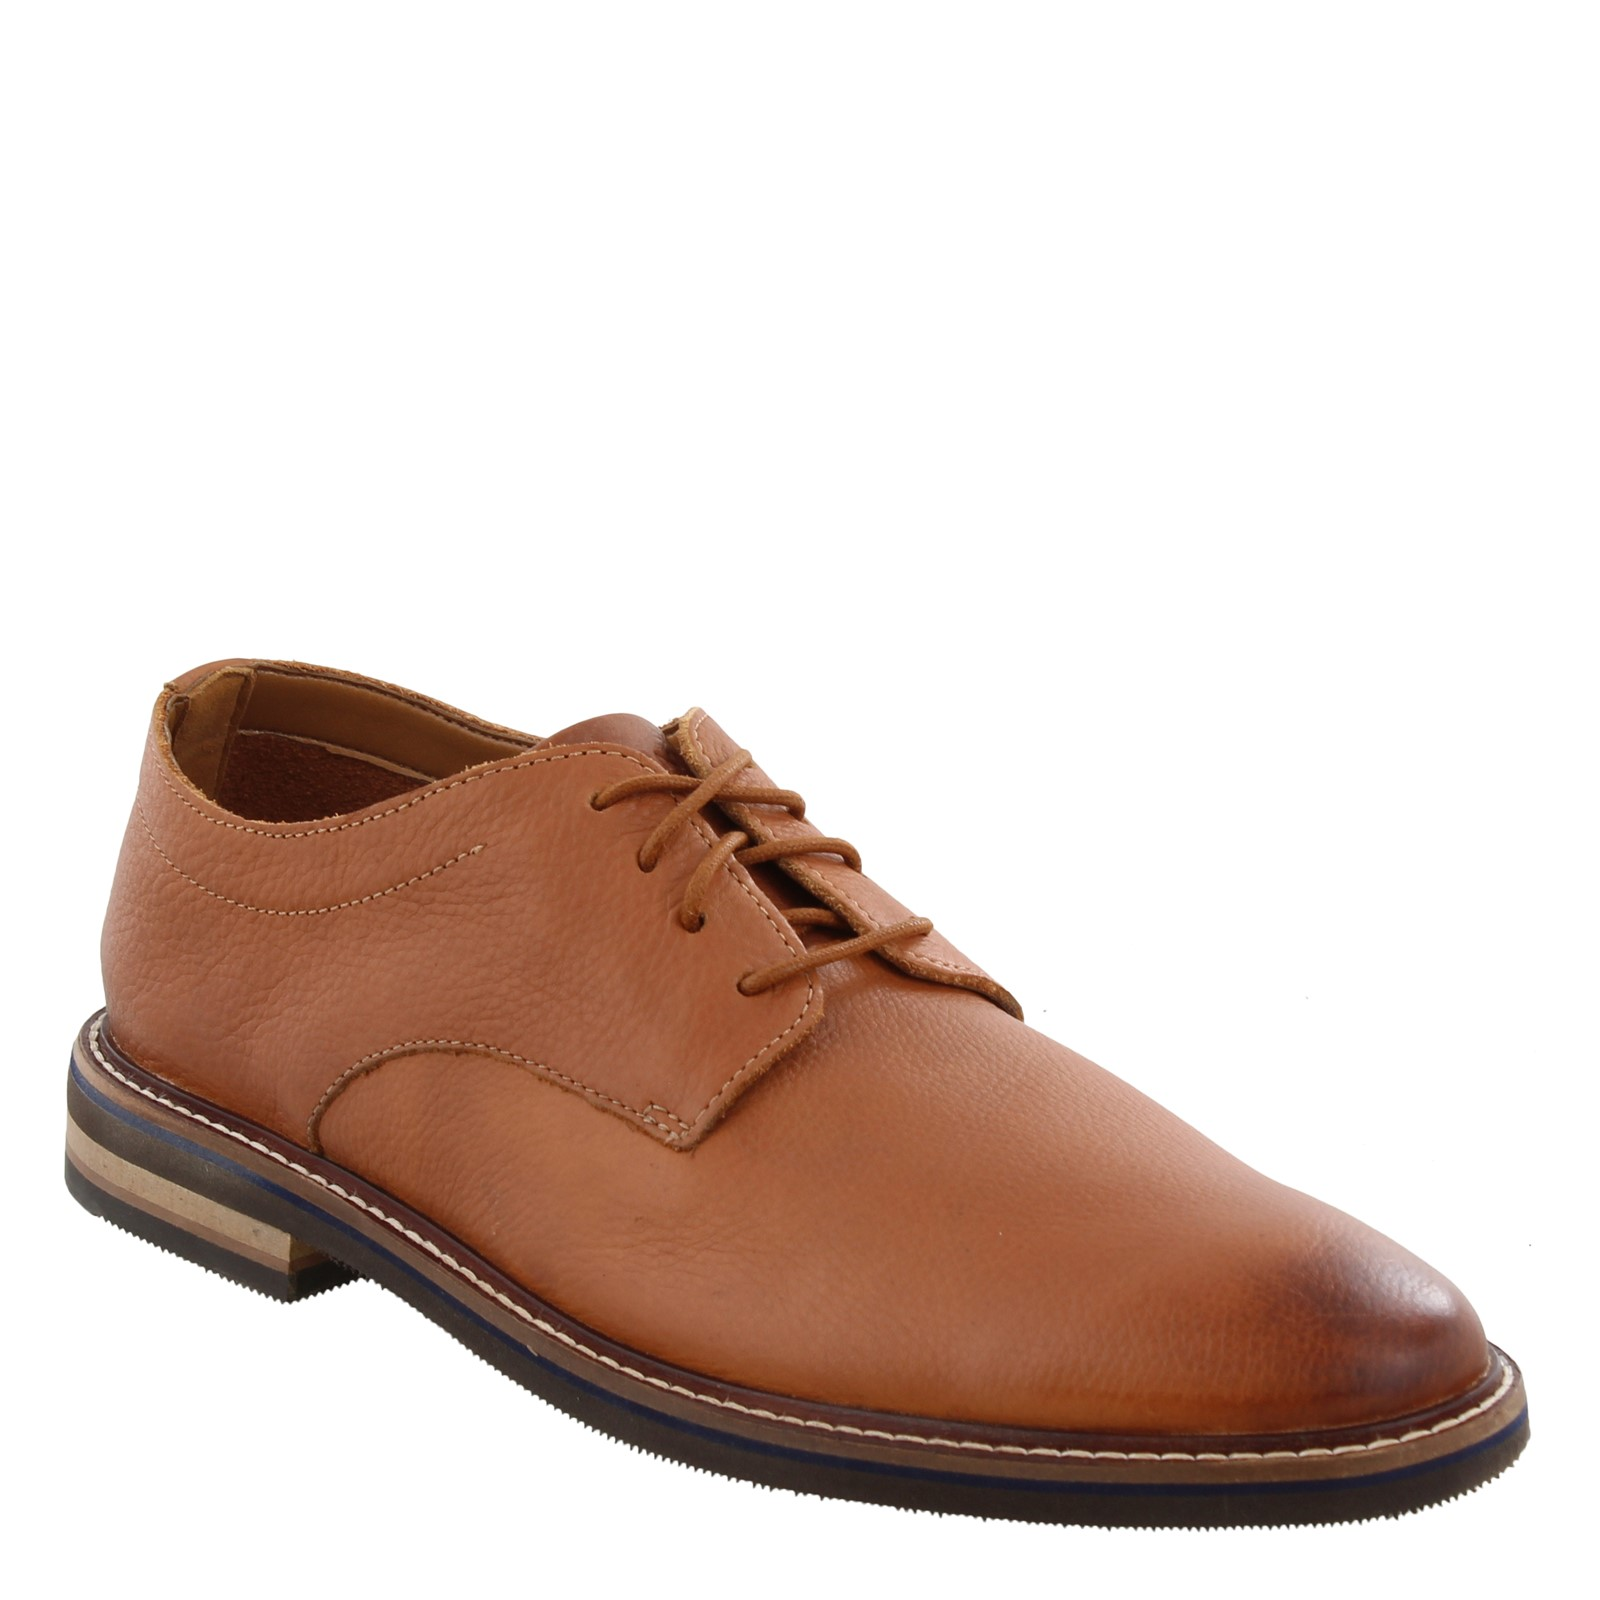 Men's Bostonian, Dezmin Plain Oxford